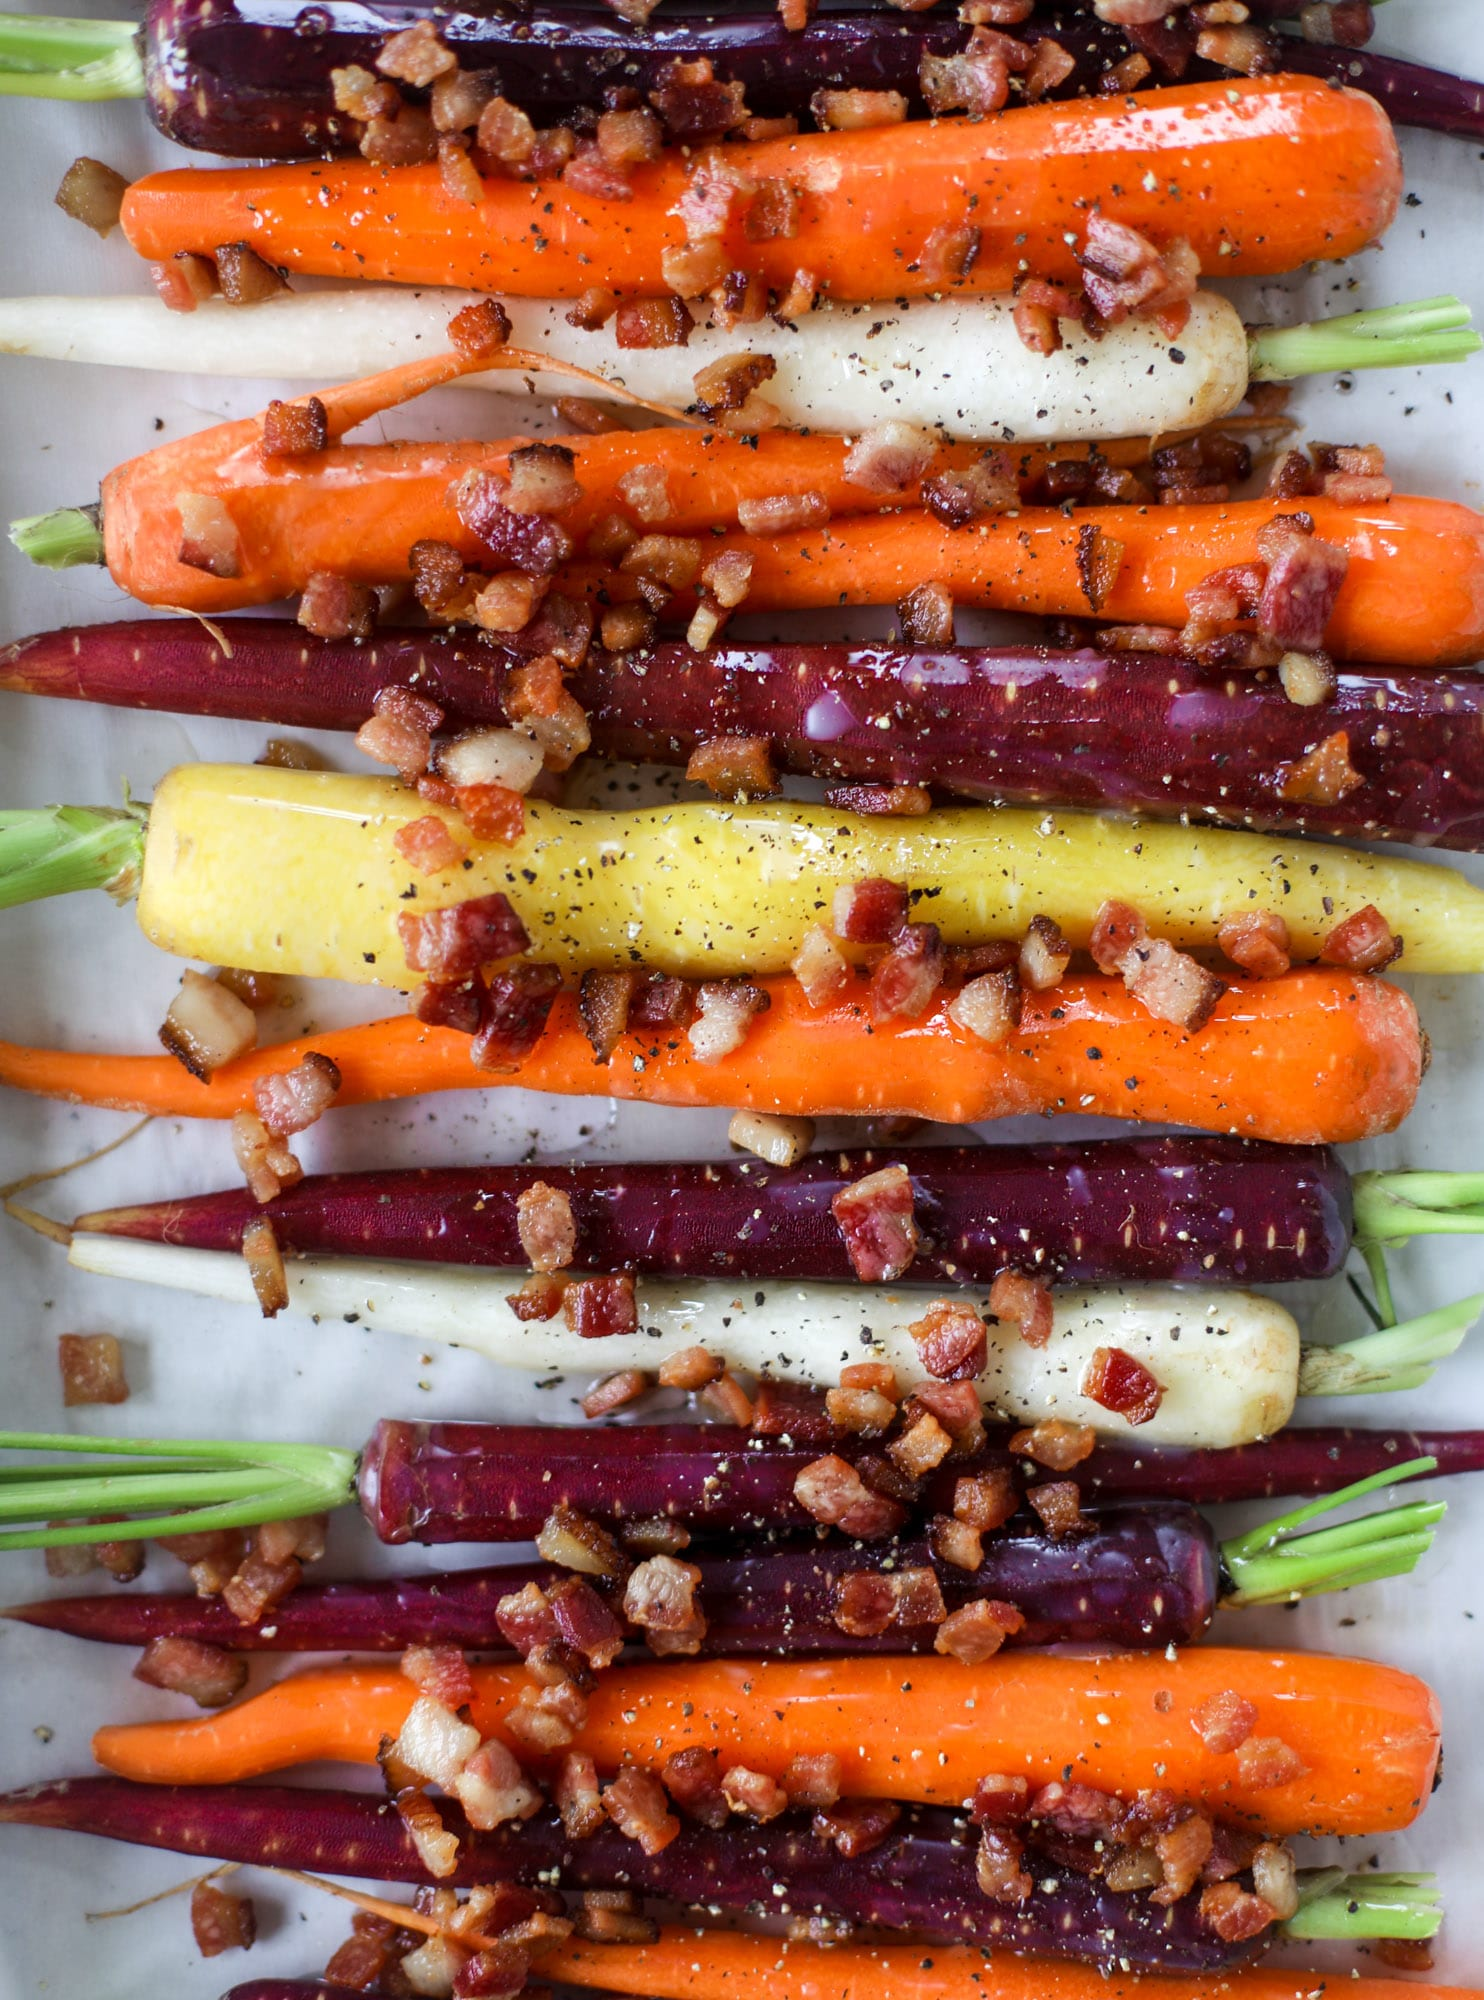 Sweet carrots are drizzled with bacon fat and chopped bacon, then roasted until they are tender, sweet and caramely. So much flavor!